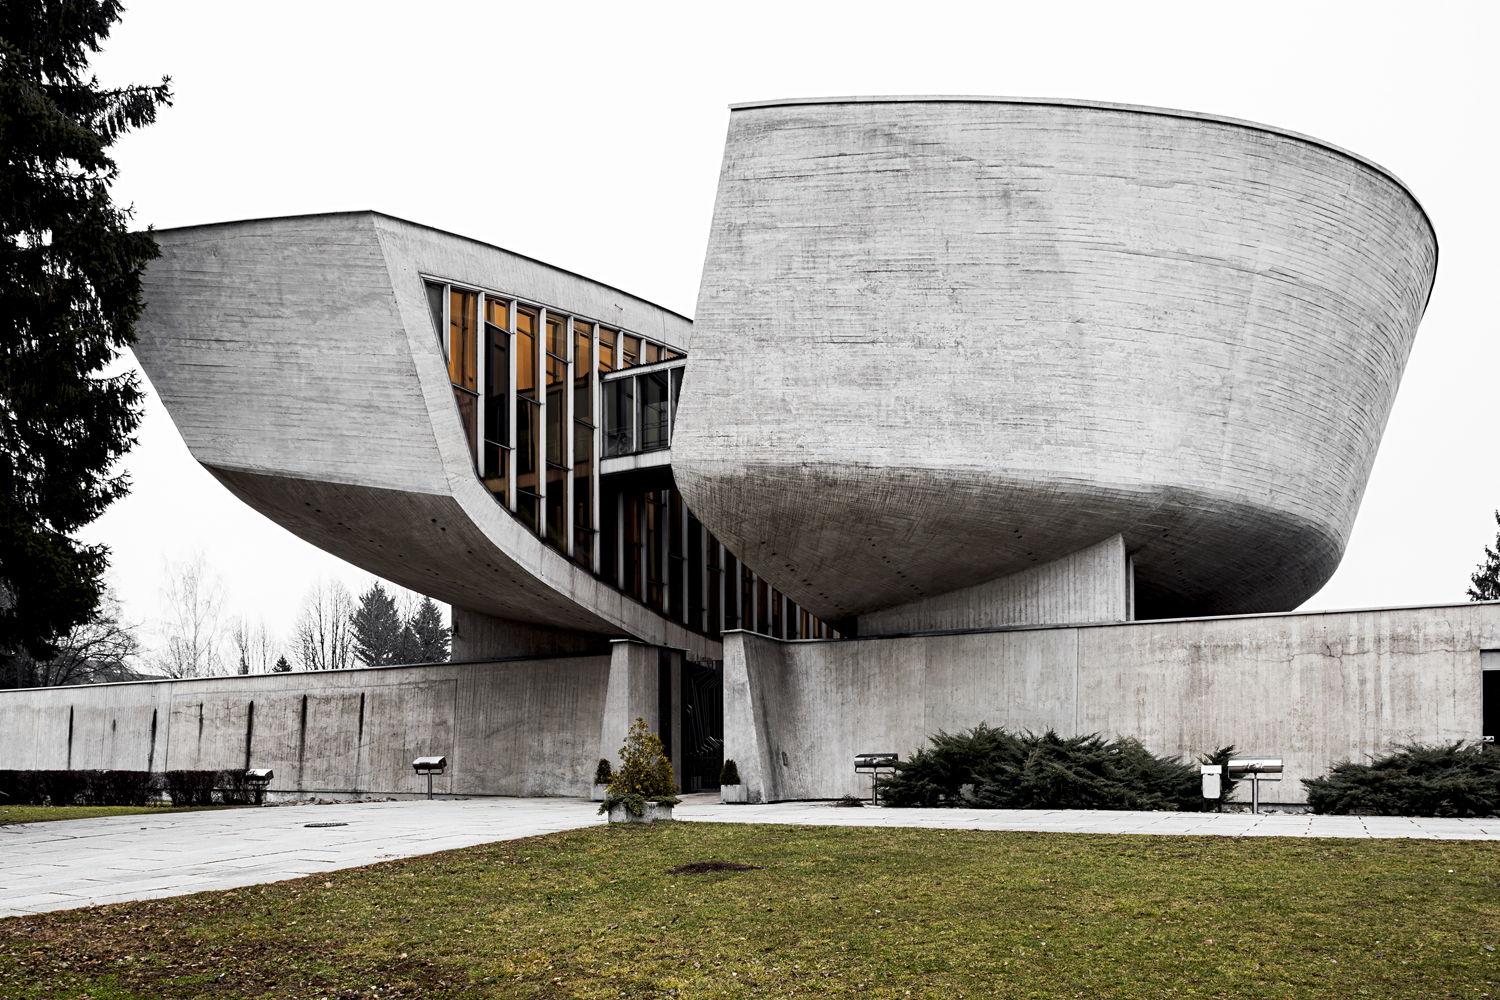 Memorial and Museum of the Slovak National Uprising, by architect Dušan Kuzma, 1963-1970. Banská Bystrica, Slovakia. Photo: Stefano Perego.